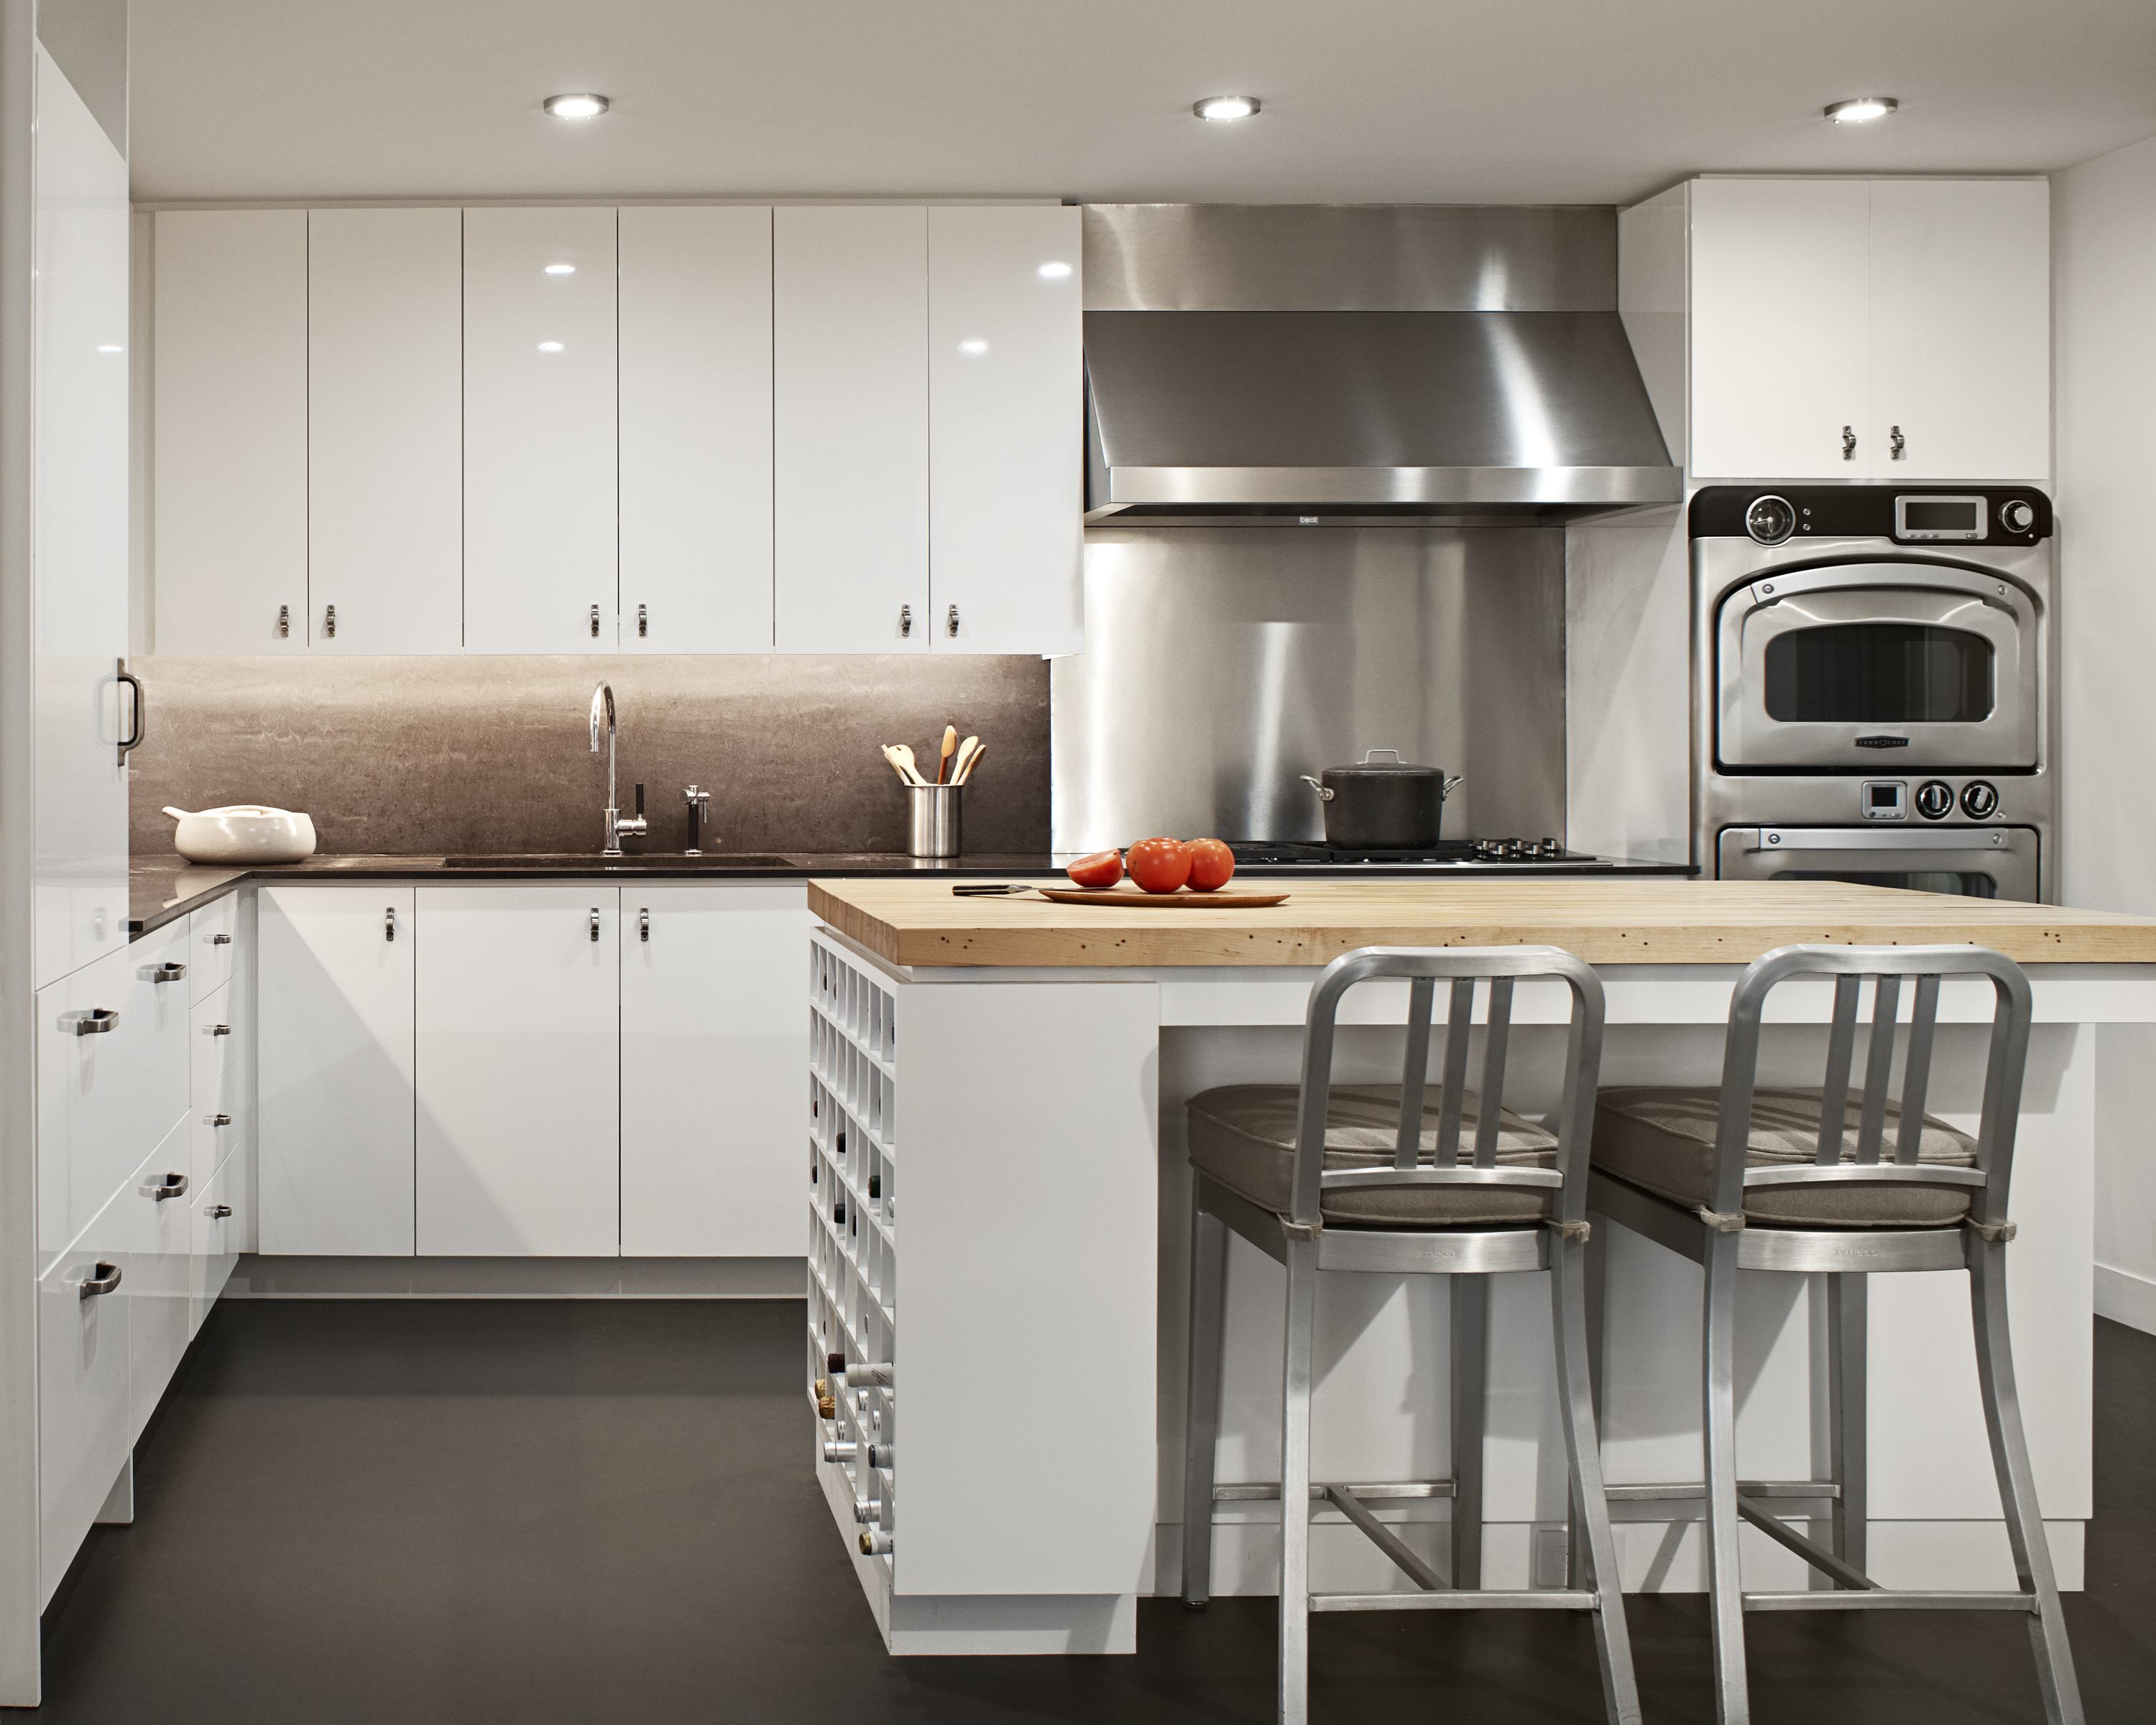 design my own kitchen ikea renovation ideas layout affordable simple